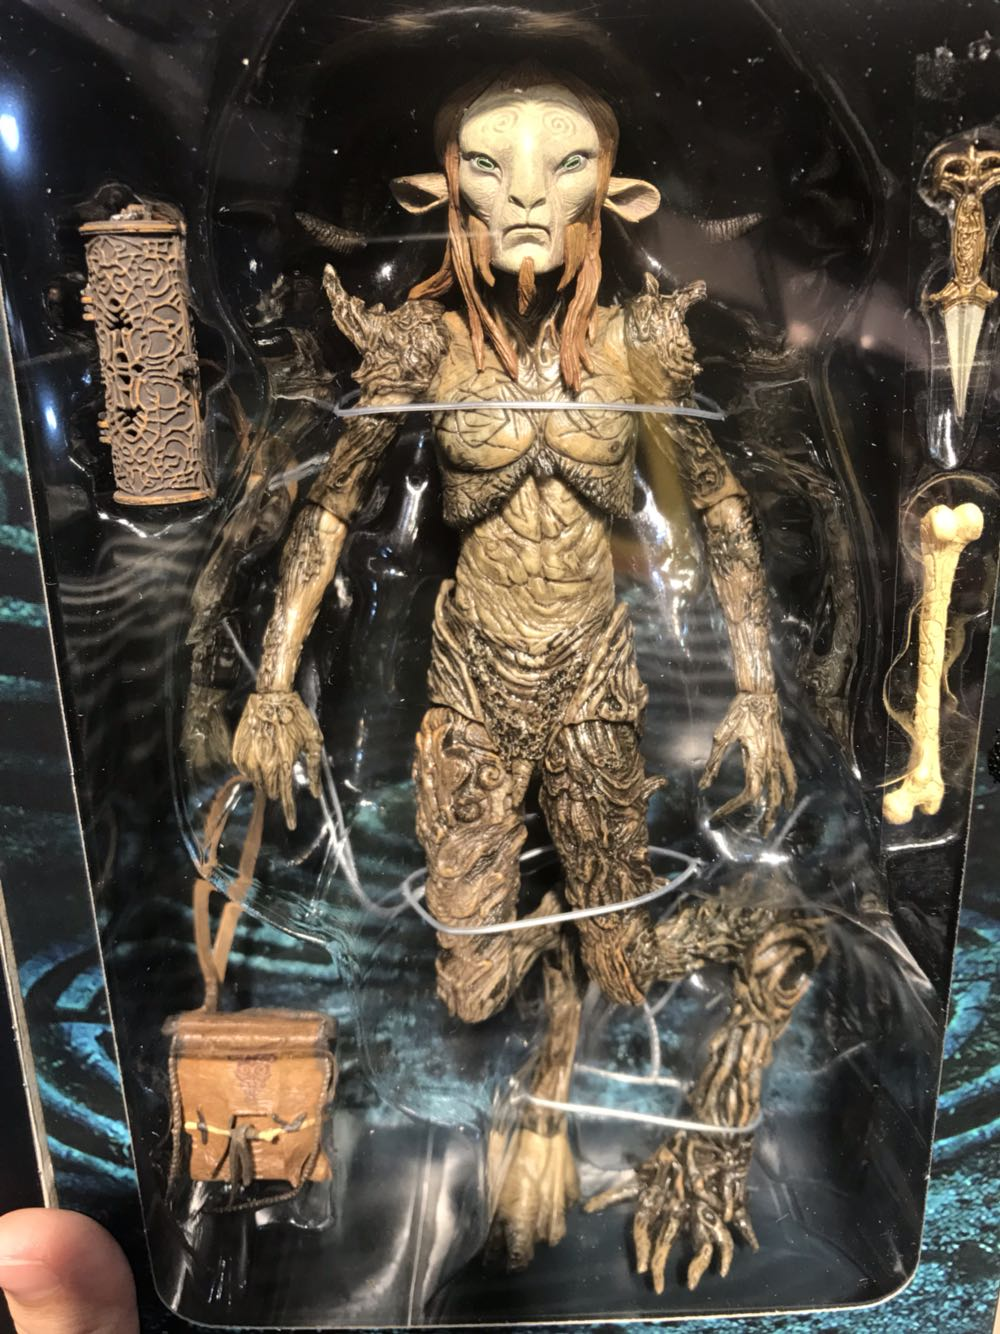 Neca Pans Labyrinth The Faun 8 Inch 1:12 Scale Collection Model Pvc Action Figure El Laberinto Del Fauno Doll Toys Action & Toy Figures